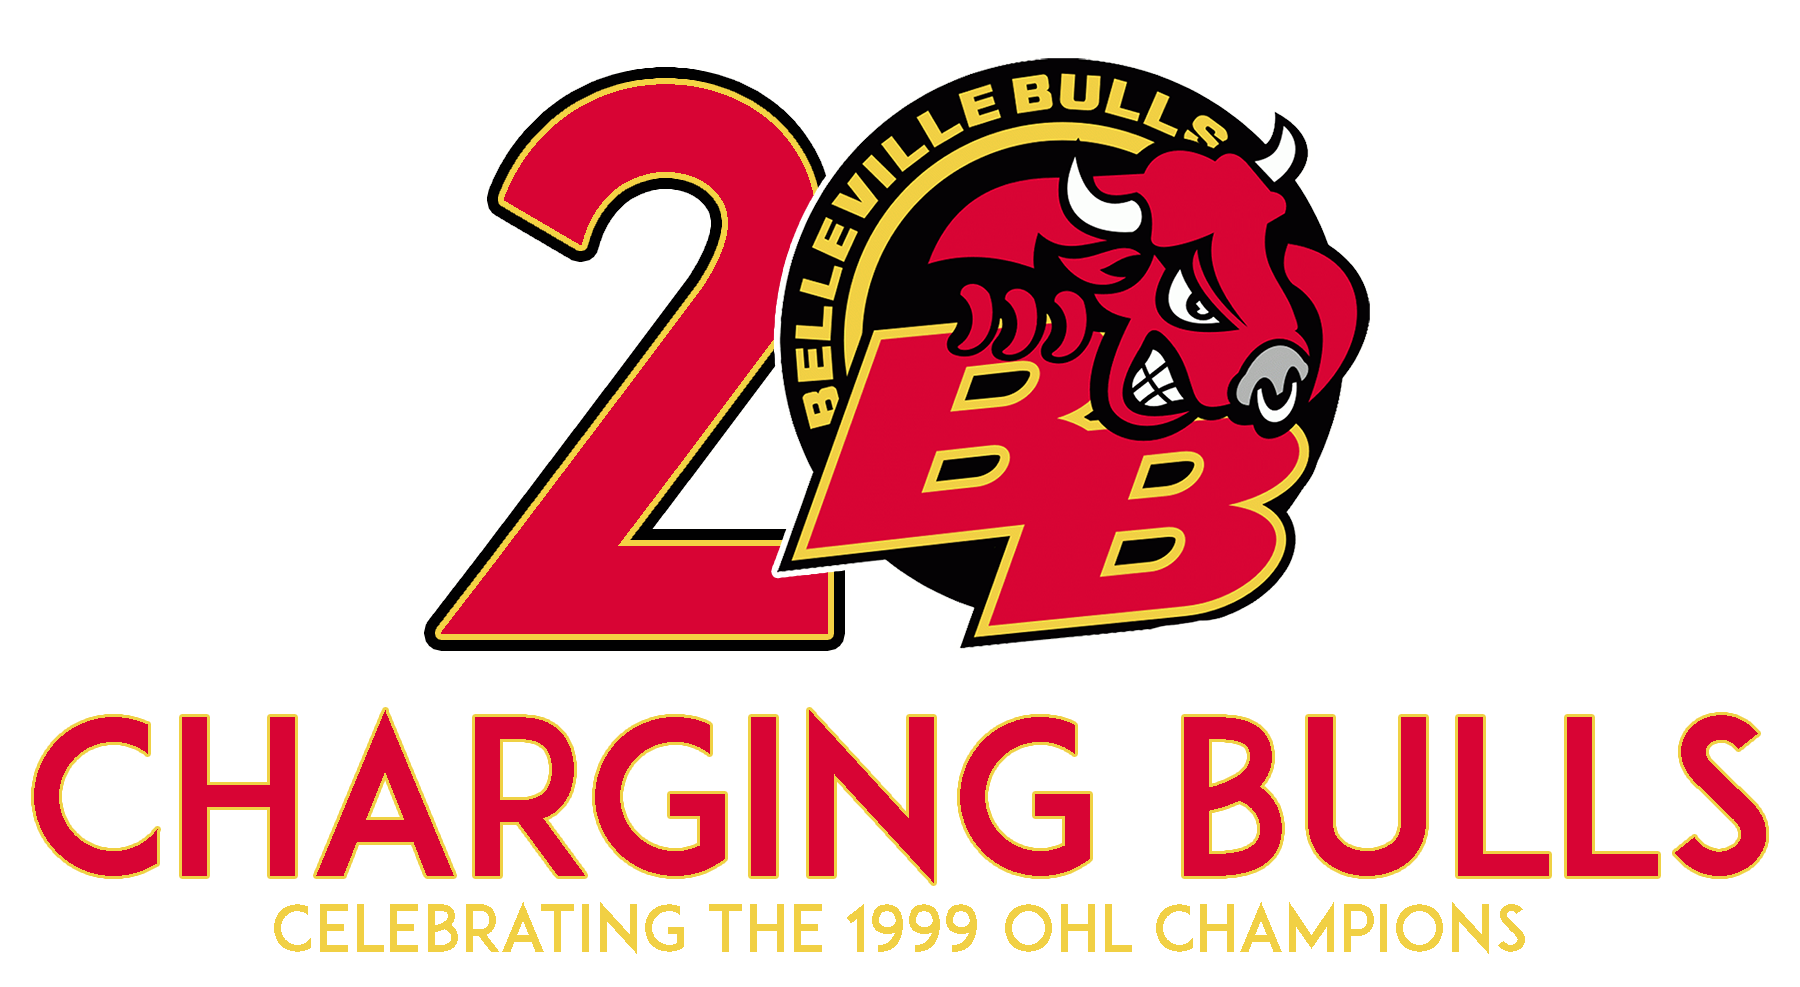 Charging Bulls: The 1999 OHL Champions